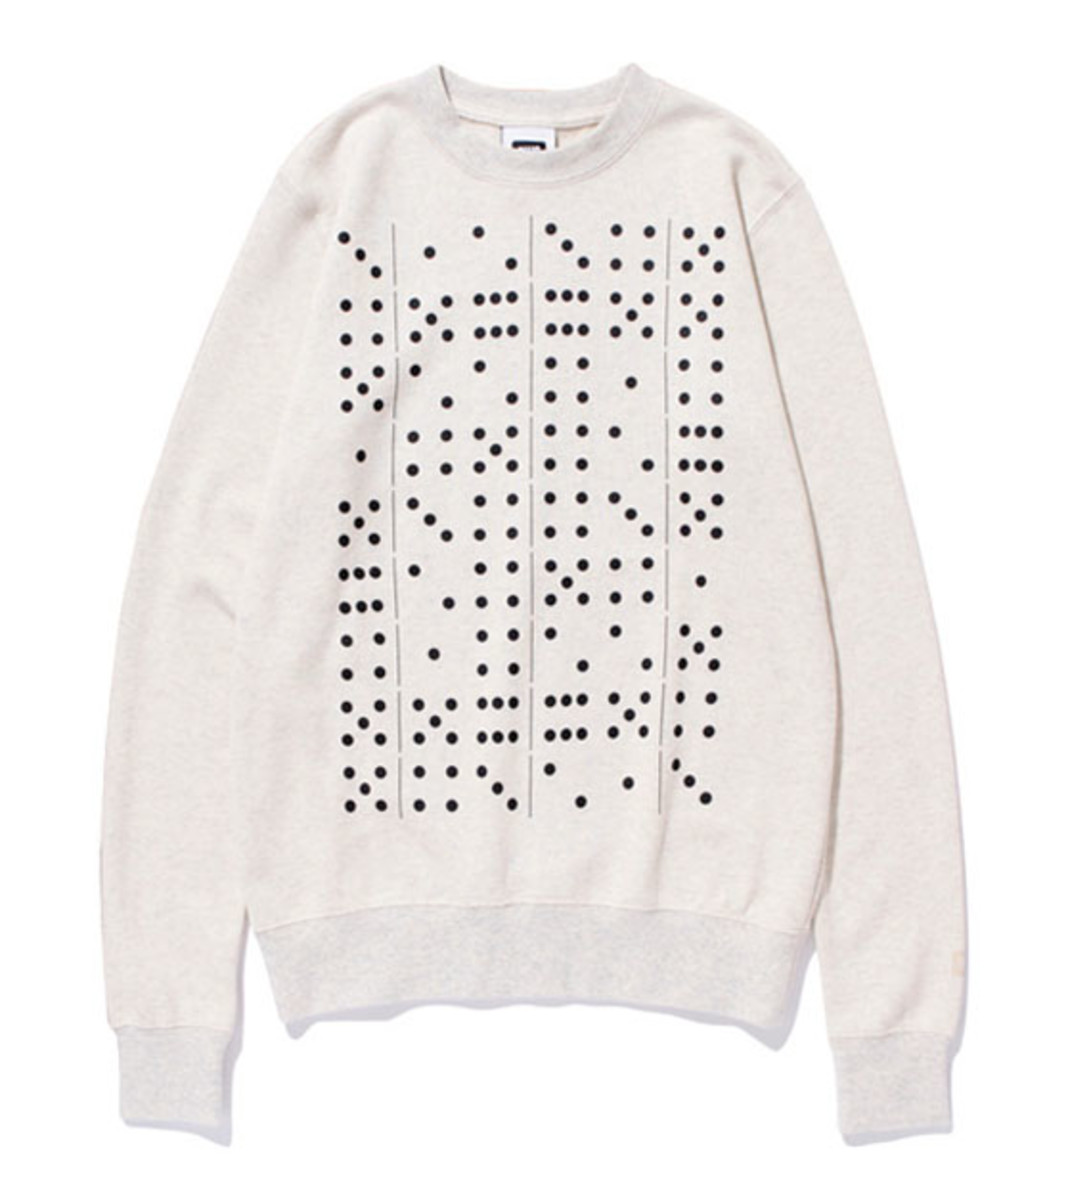 Domino Sweat Shirt Heather Gray